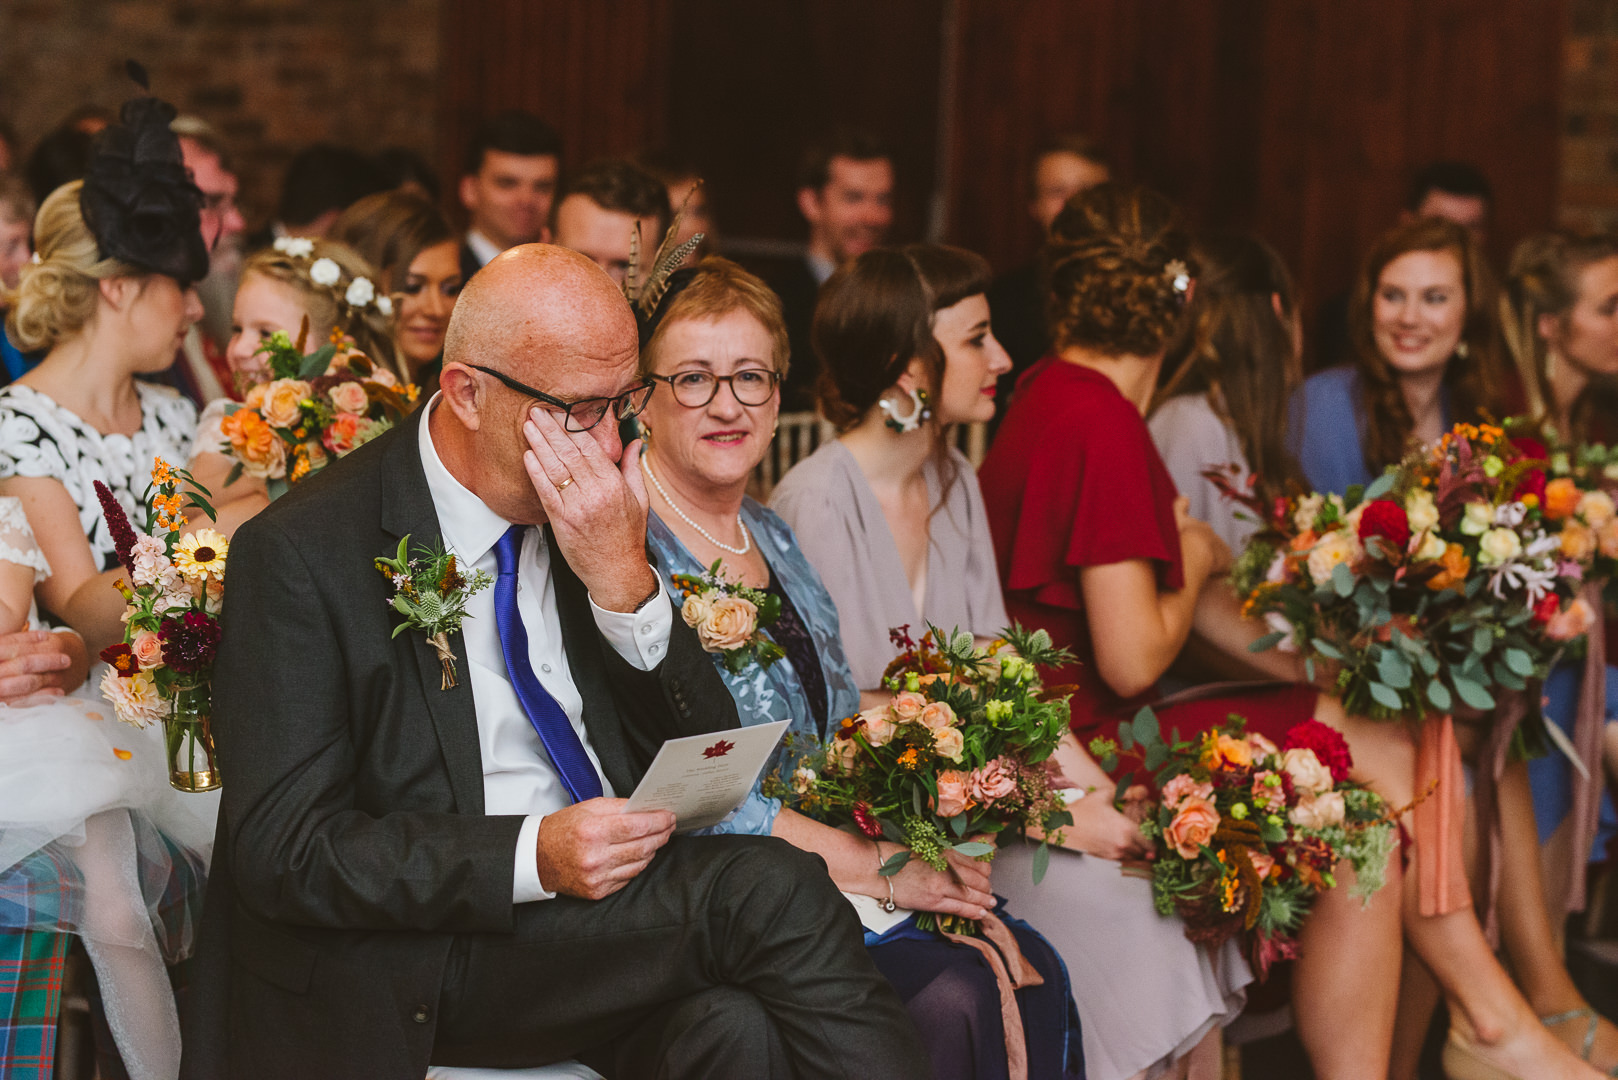 Why have a second shooter at a wedding? Capture different angles from the ceremony.